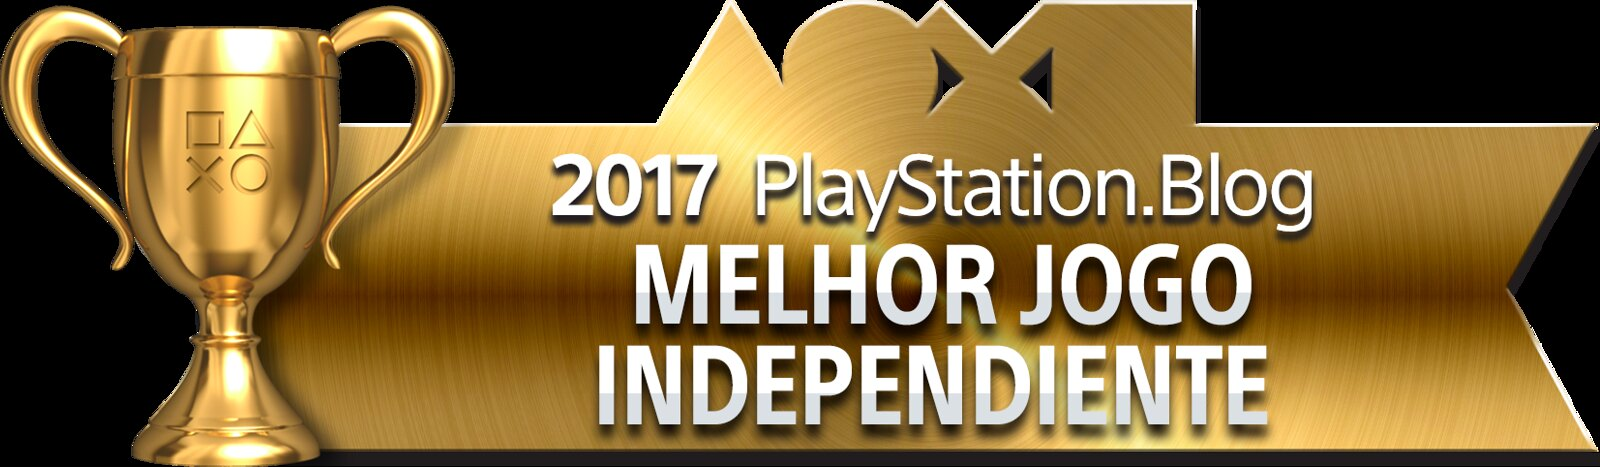 PlayStation Blog Game of the Year 2017 - Best Independent Game (Gold)